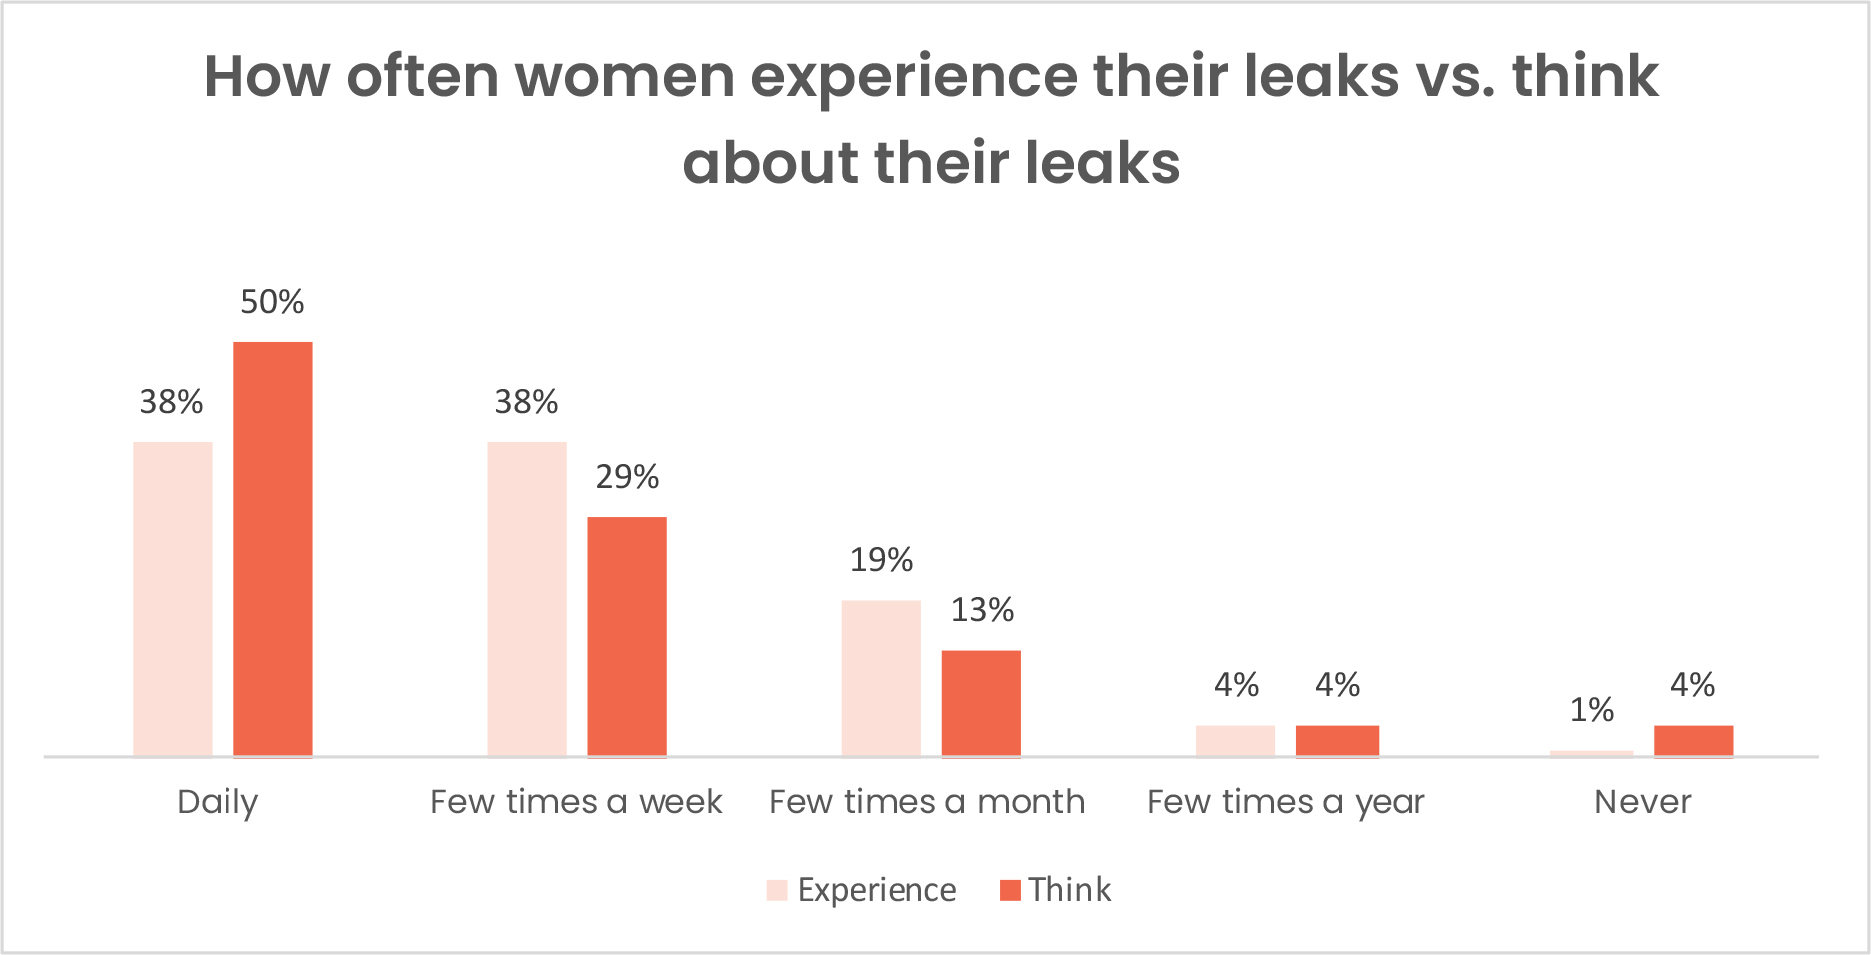 how often women experience their leaks vs think about their leaks